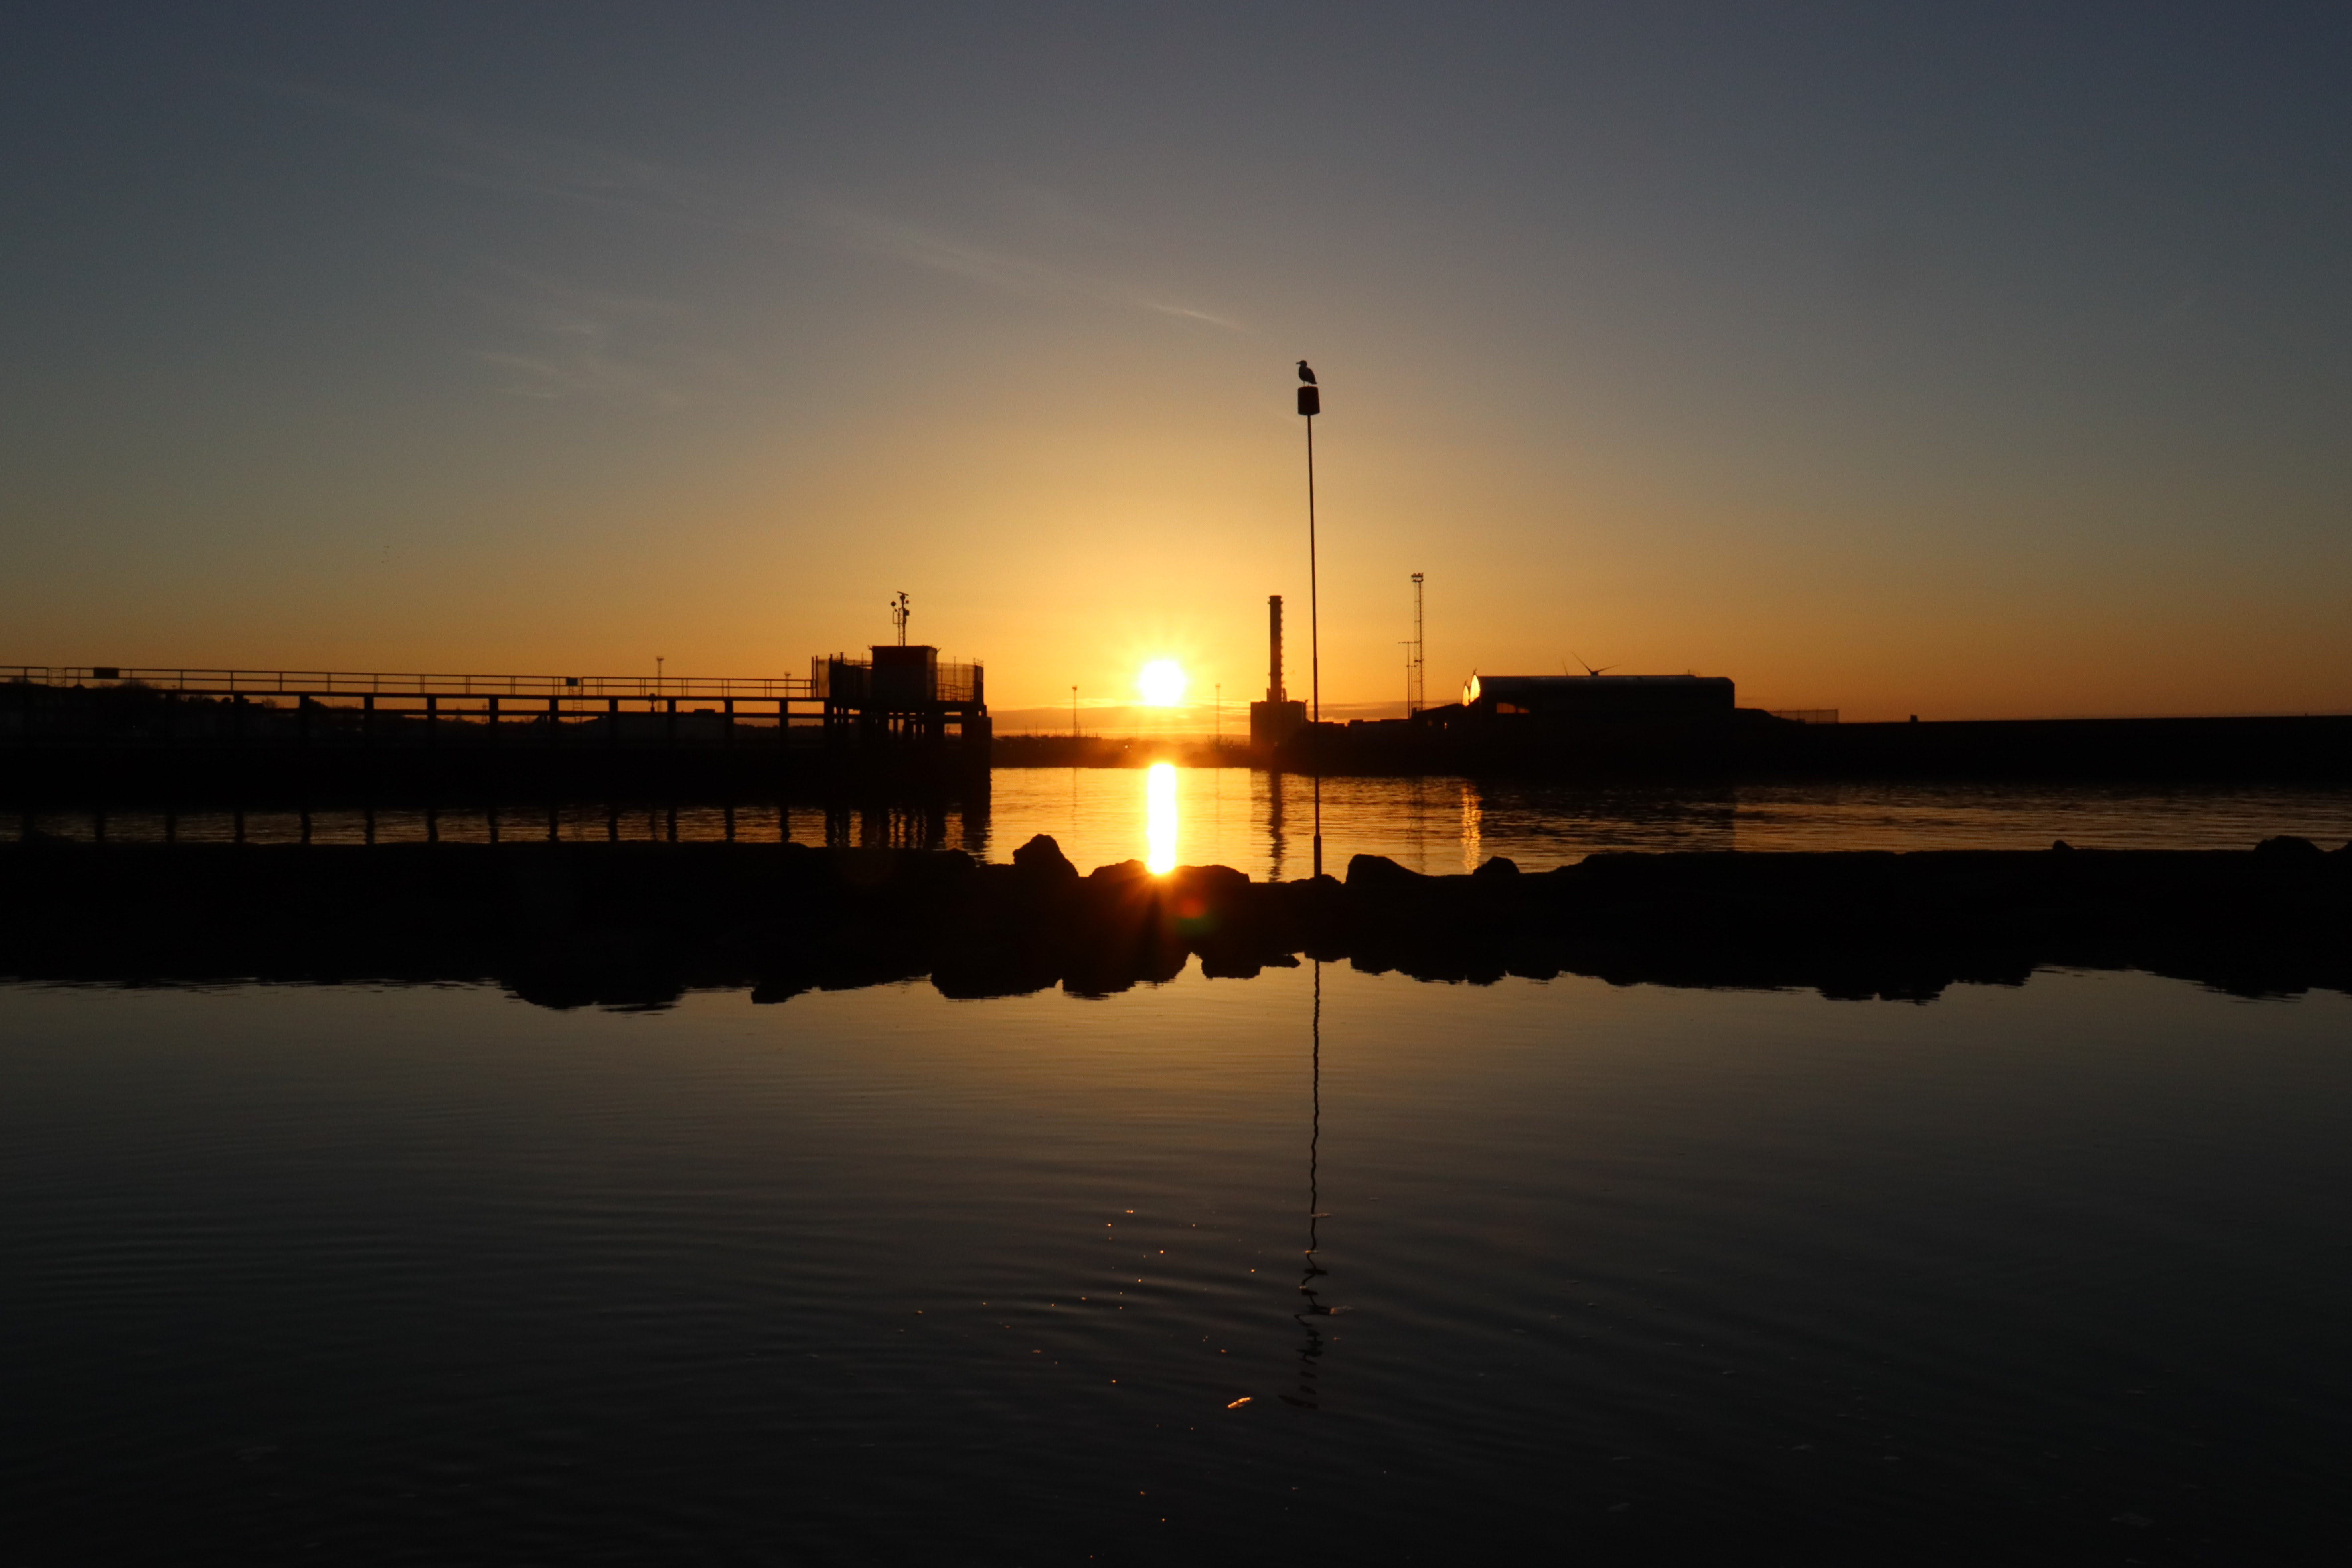 Sun rising over Shoreham port that is being reflected in the water below.